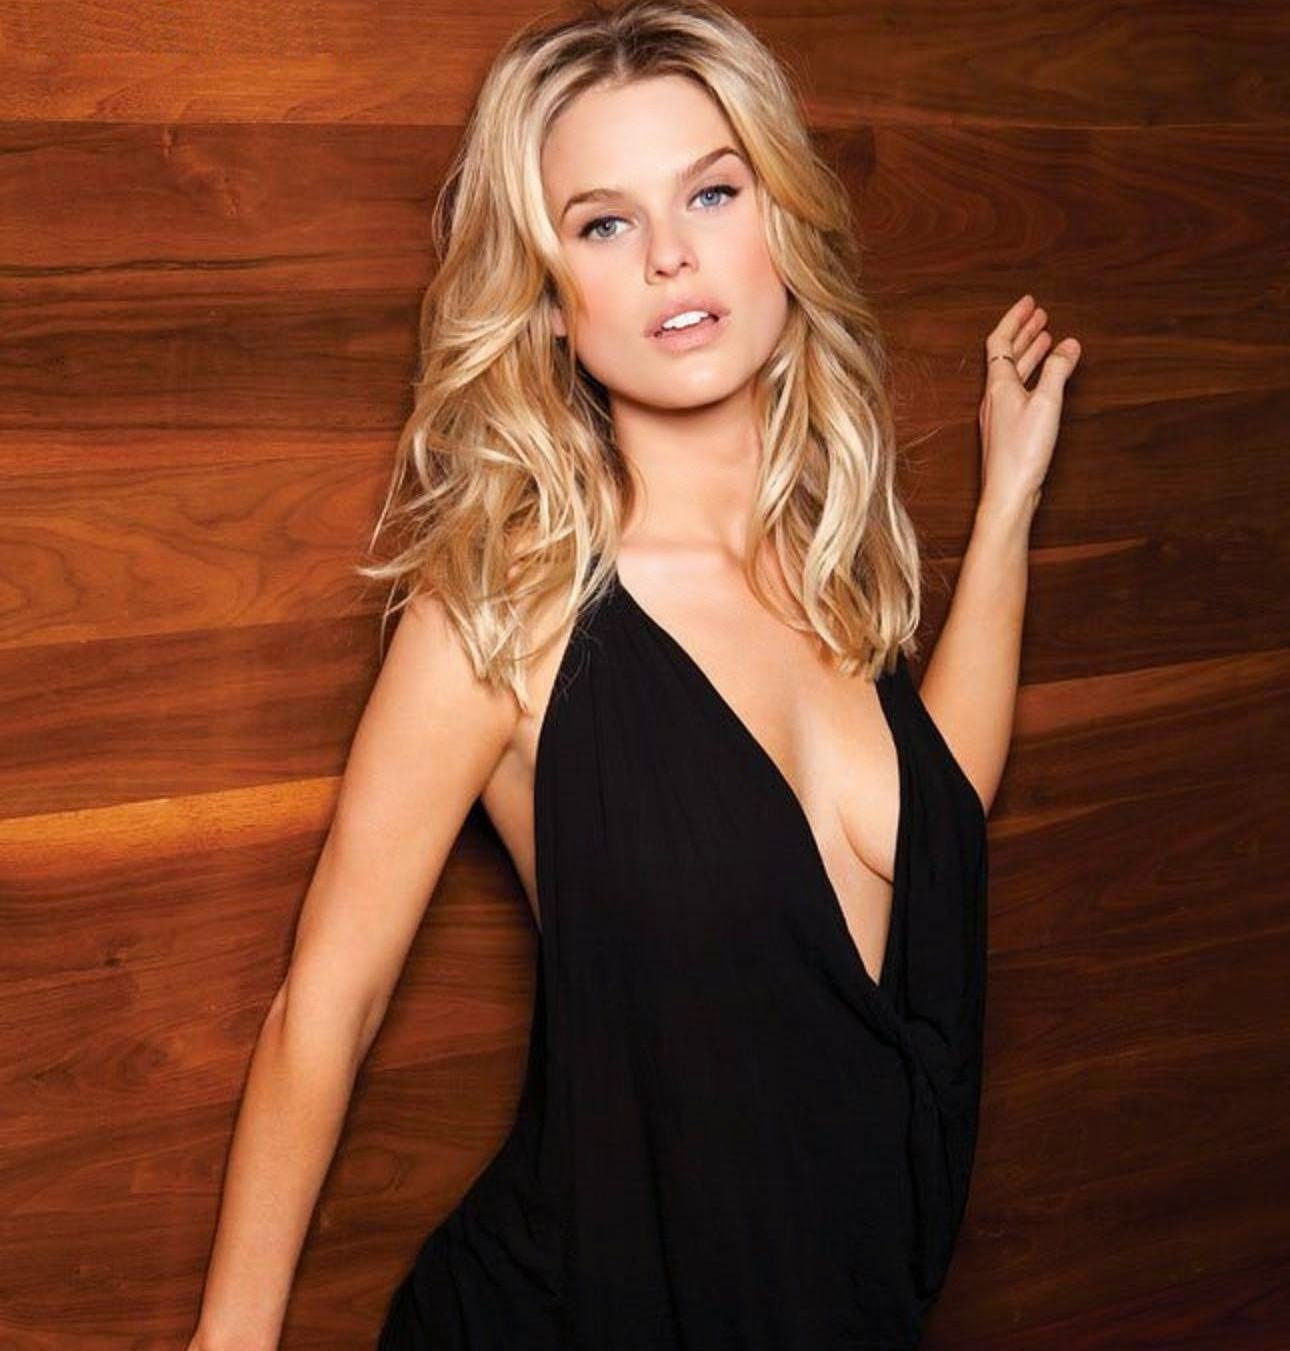 Hollywood Actress Wallpaper: Alice Eve Wallpapers Free ...